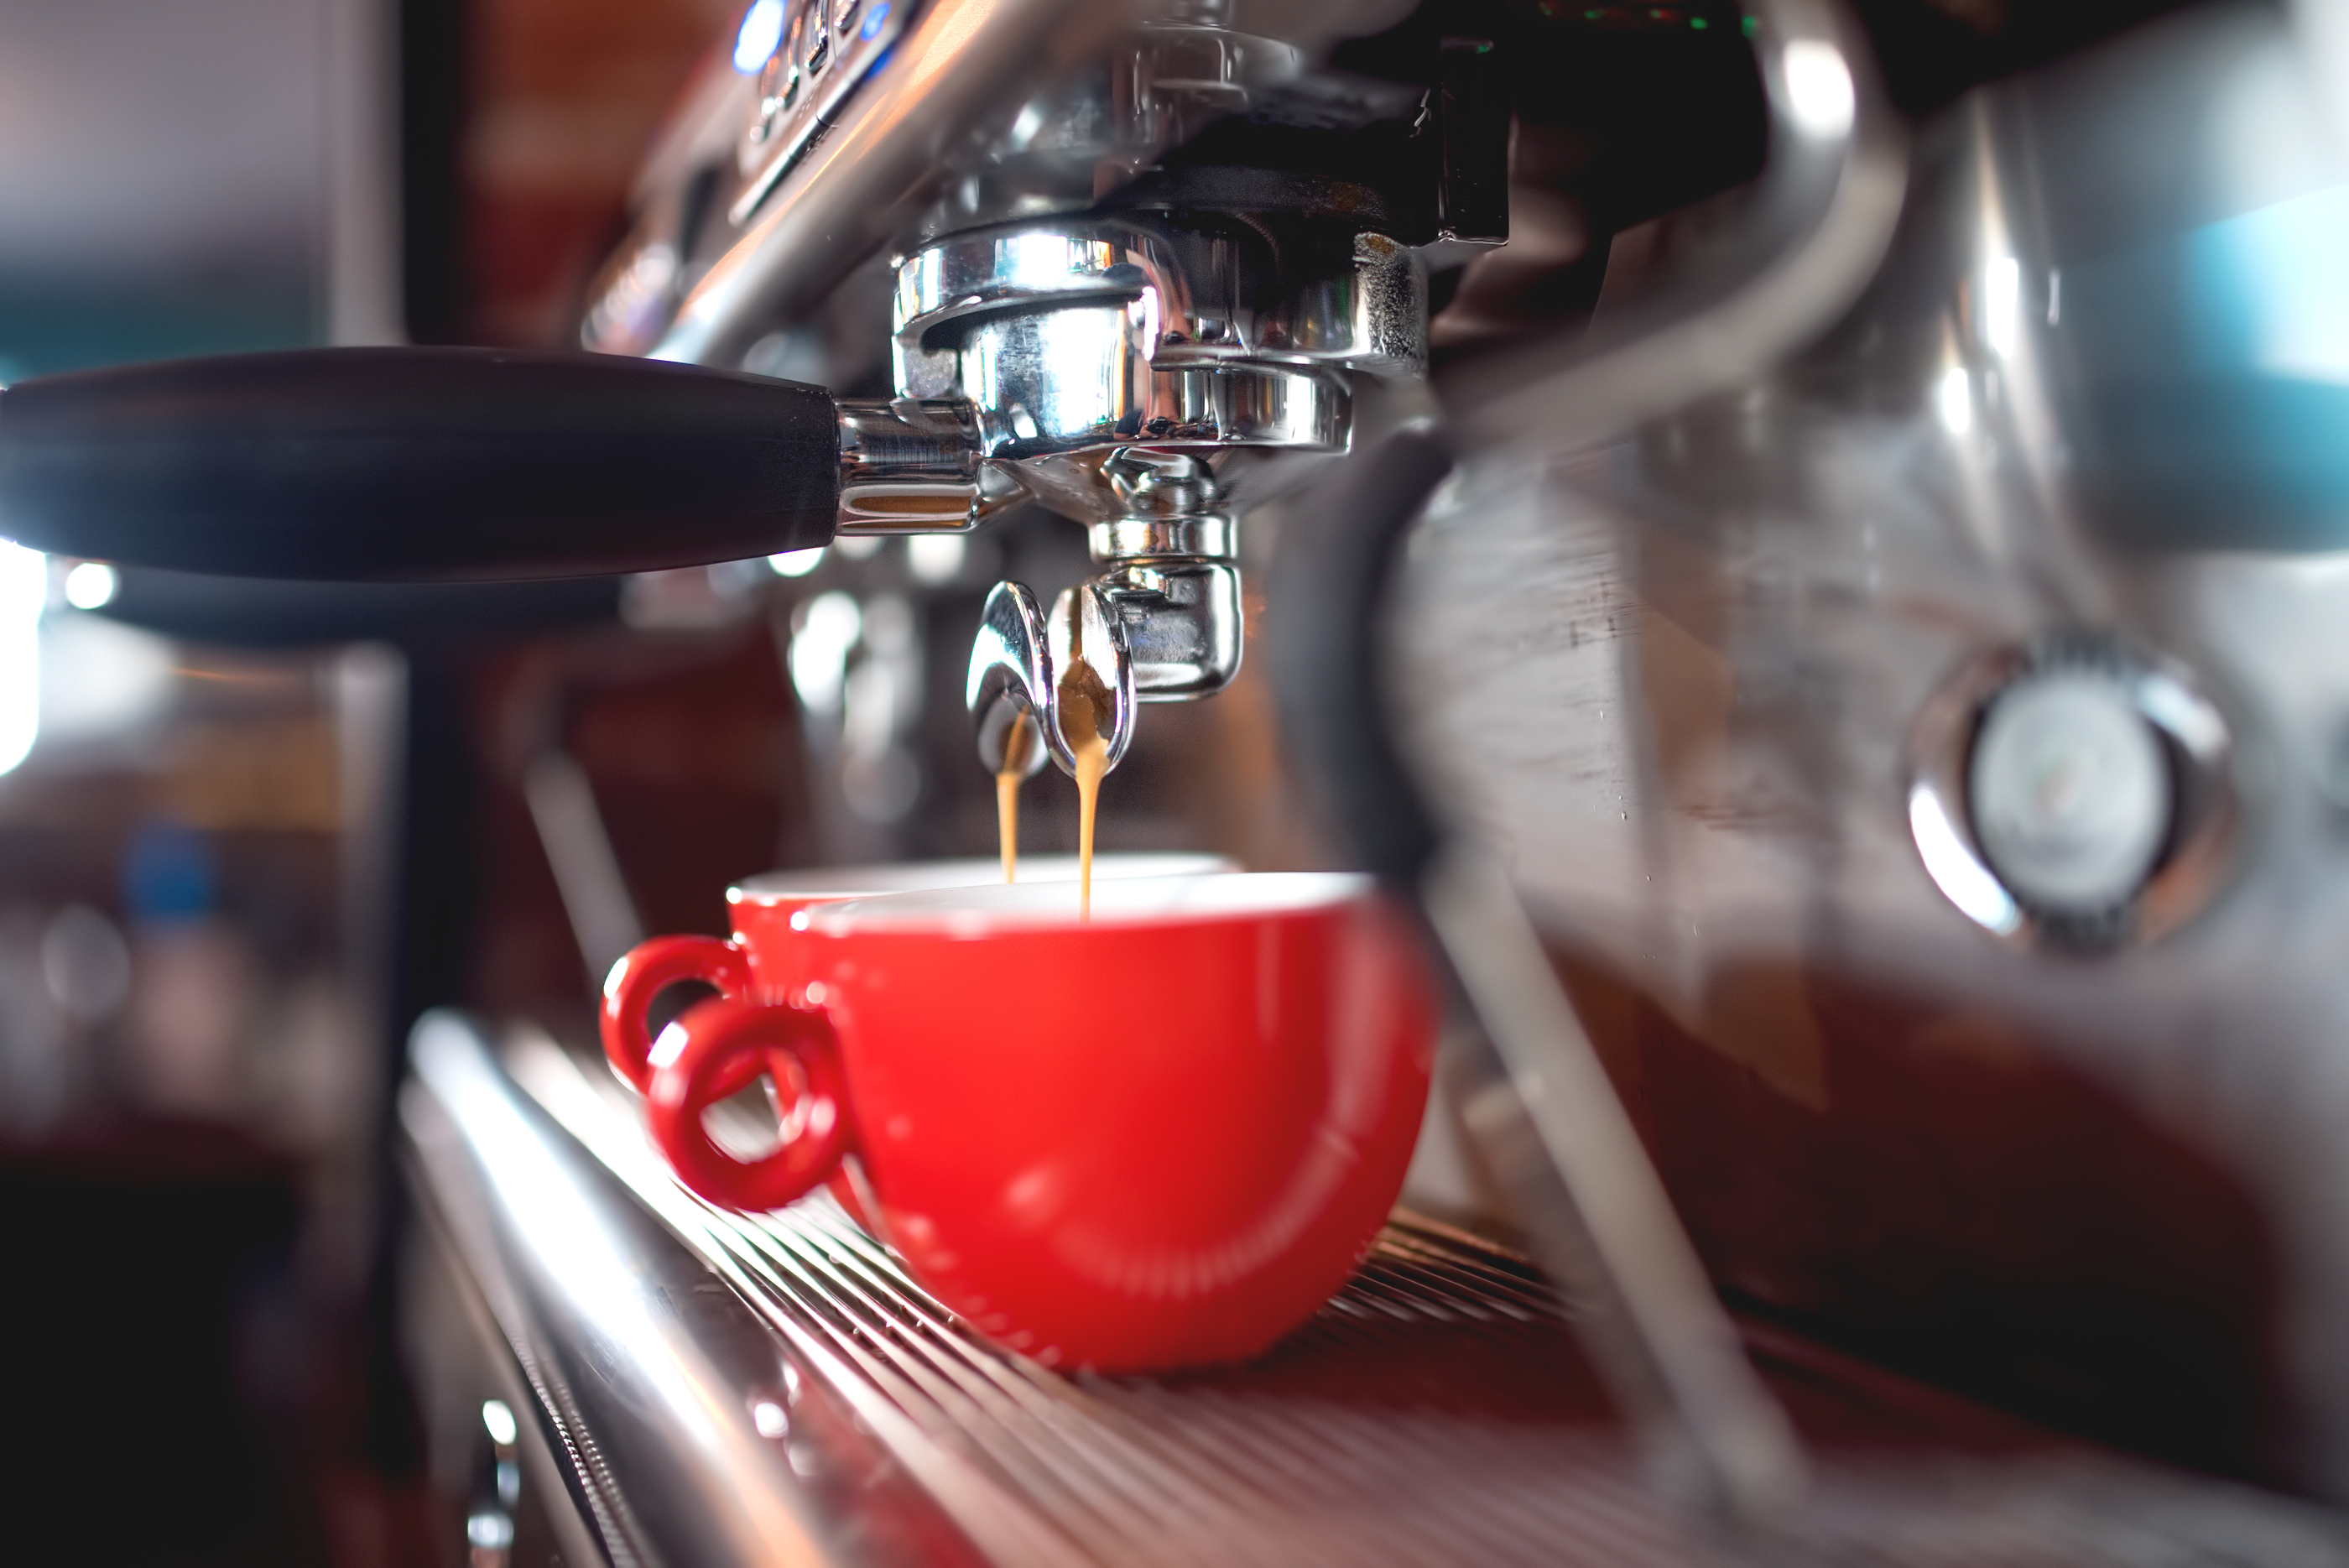 Automatic Espresso Machine Pouring Coffee In Cups At Restaurant Or Pub. Barista Concept With Machine